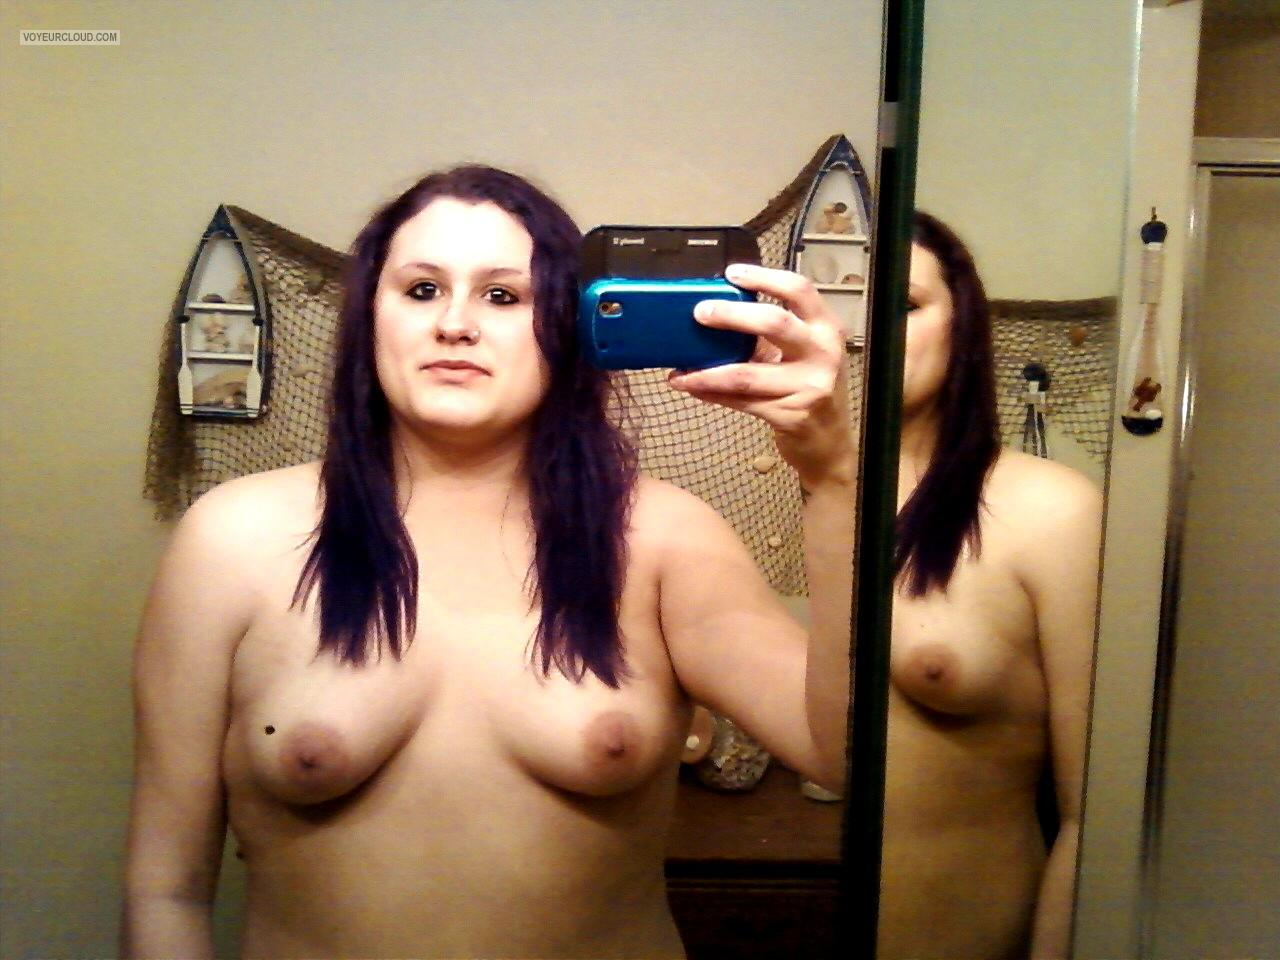 My Small Tits Topless Selfie by Sarah